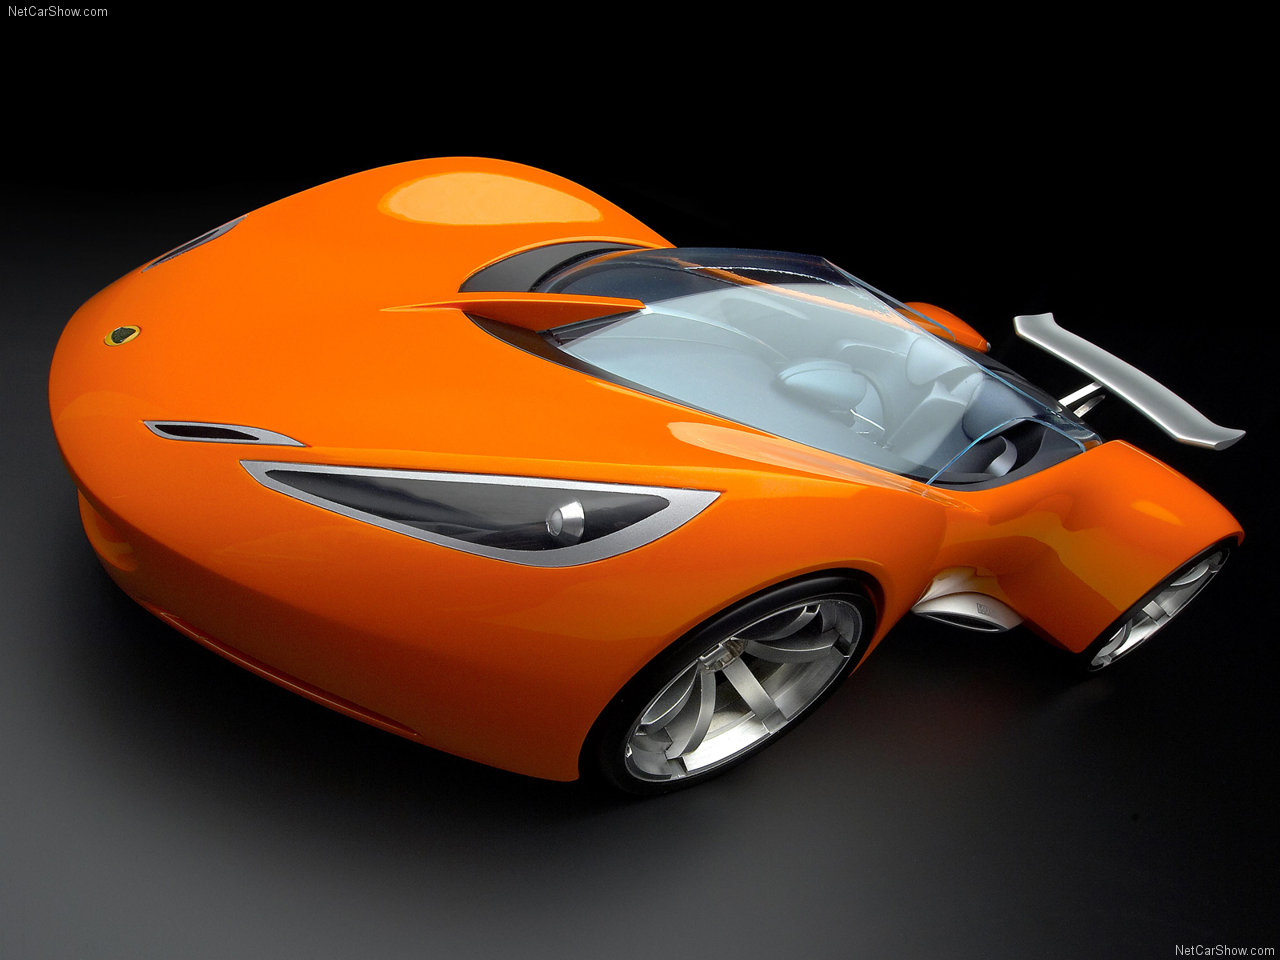 2007 Lotus Hot Wheels Concept Automobile